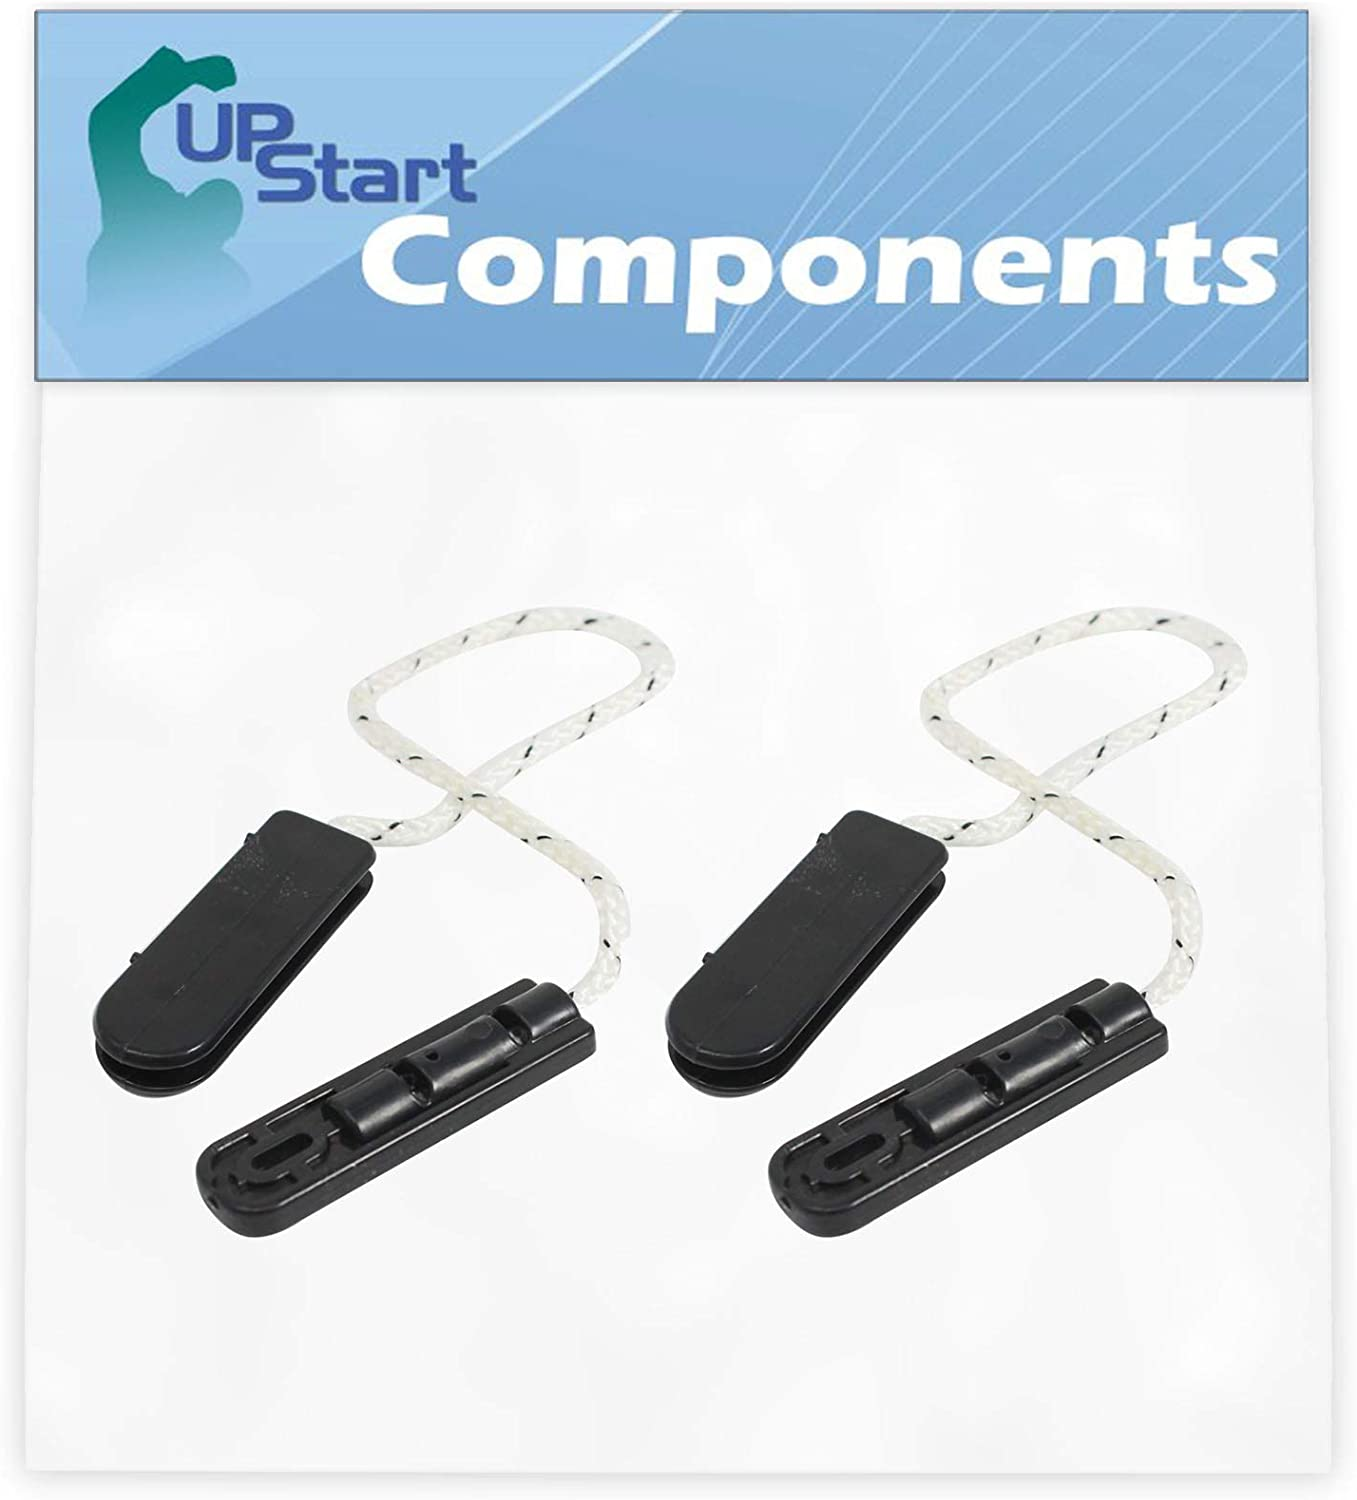 Compatible with AP4511304 Door Hinge Cable Assembly 2-Pack 4933DD3001B Dishwasher Door Cable Replacement for LG LDF6810WW-01 Dishwasher